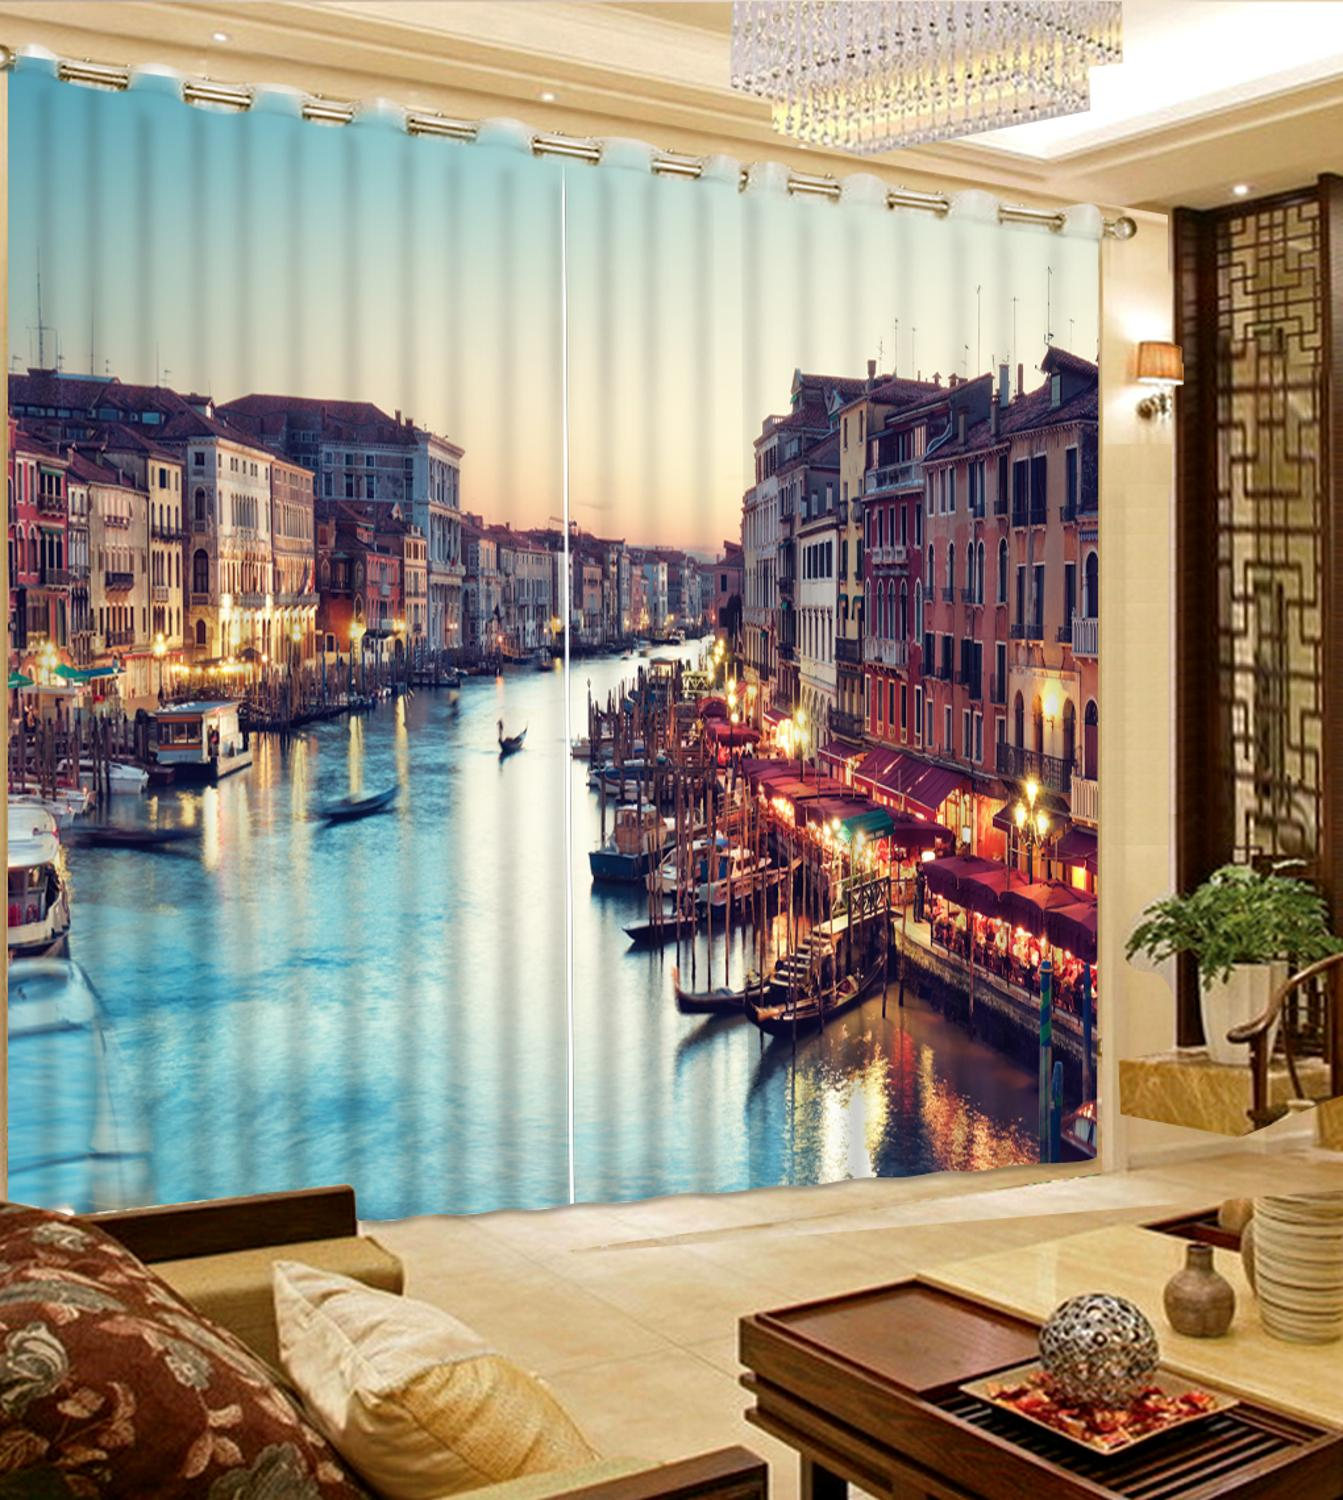 customize european curtains Ship dock curtains for living room kitchen curtains decorationcustomize european curtains Ship dock curtains for living room kitchen curtains decoration